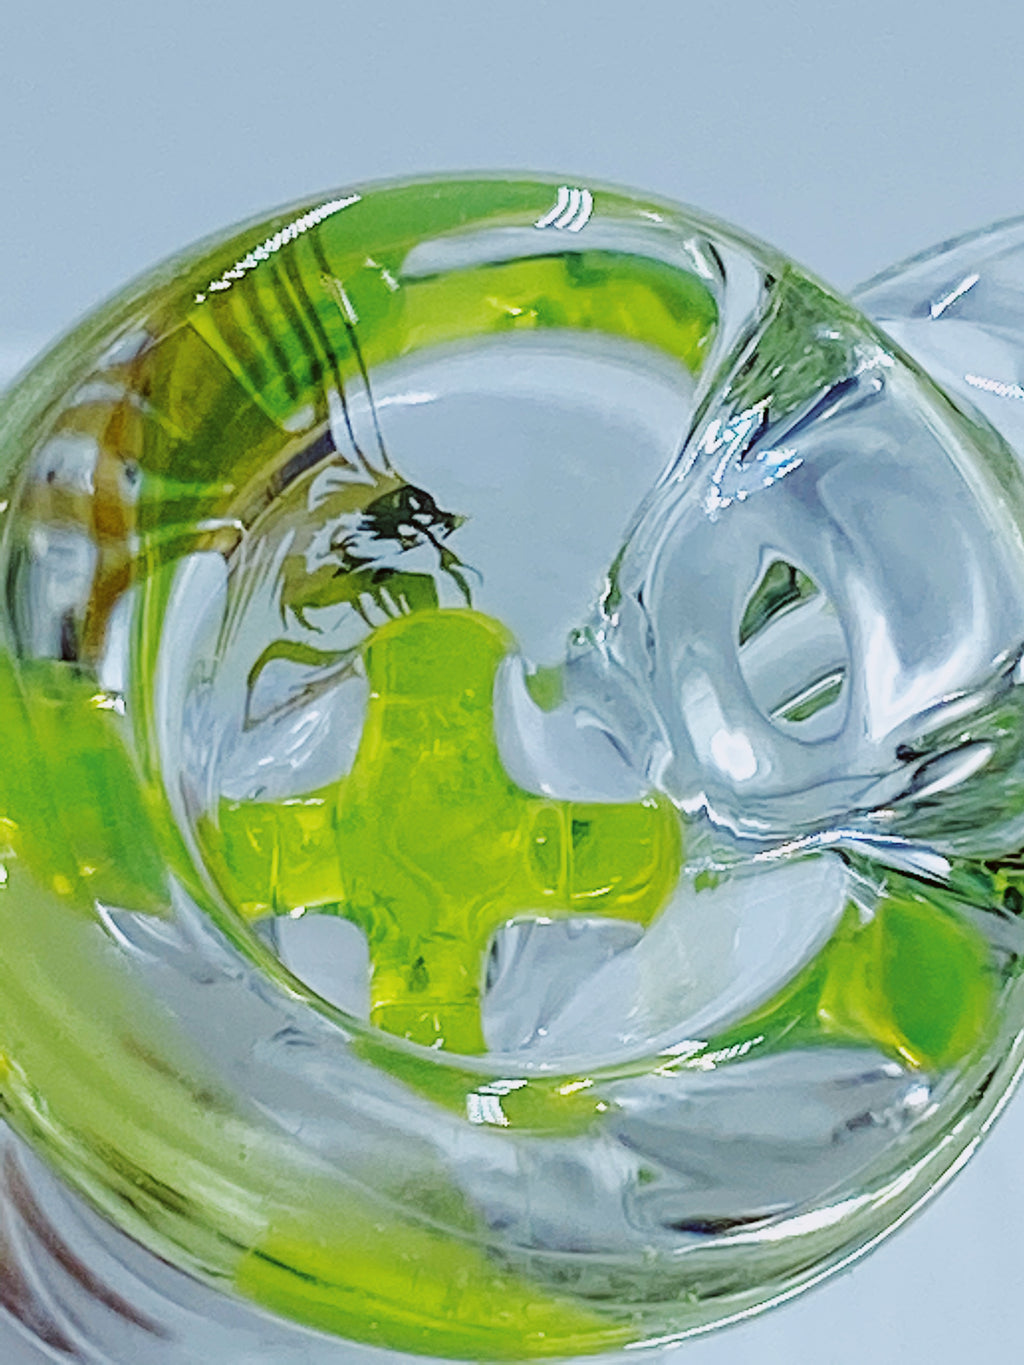 Kobb Glass 14mm Econo Line Slime Bowl - Smoke Country - Land of the artistic glass blown bongs